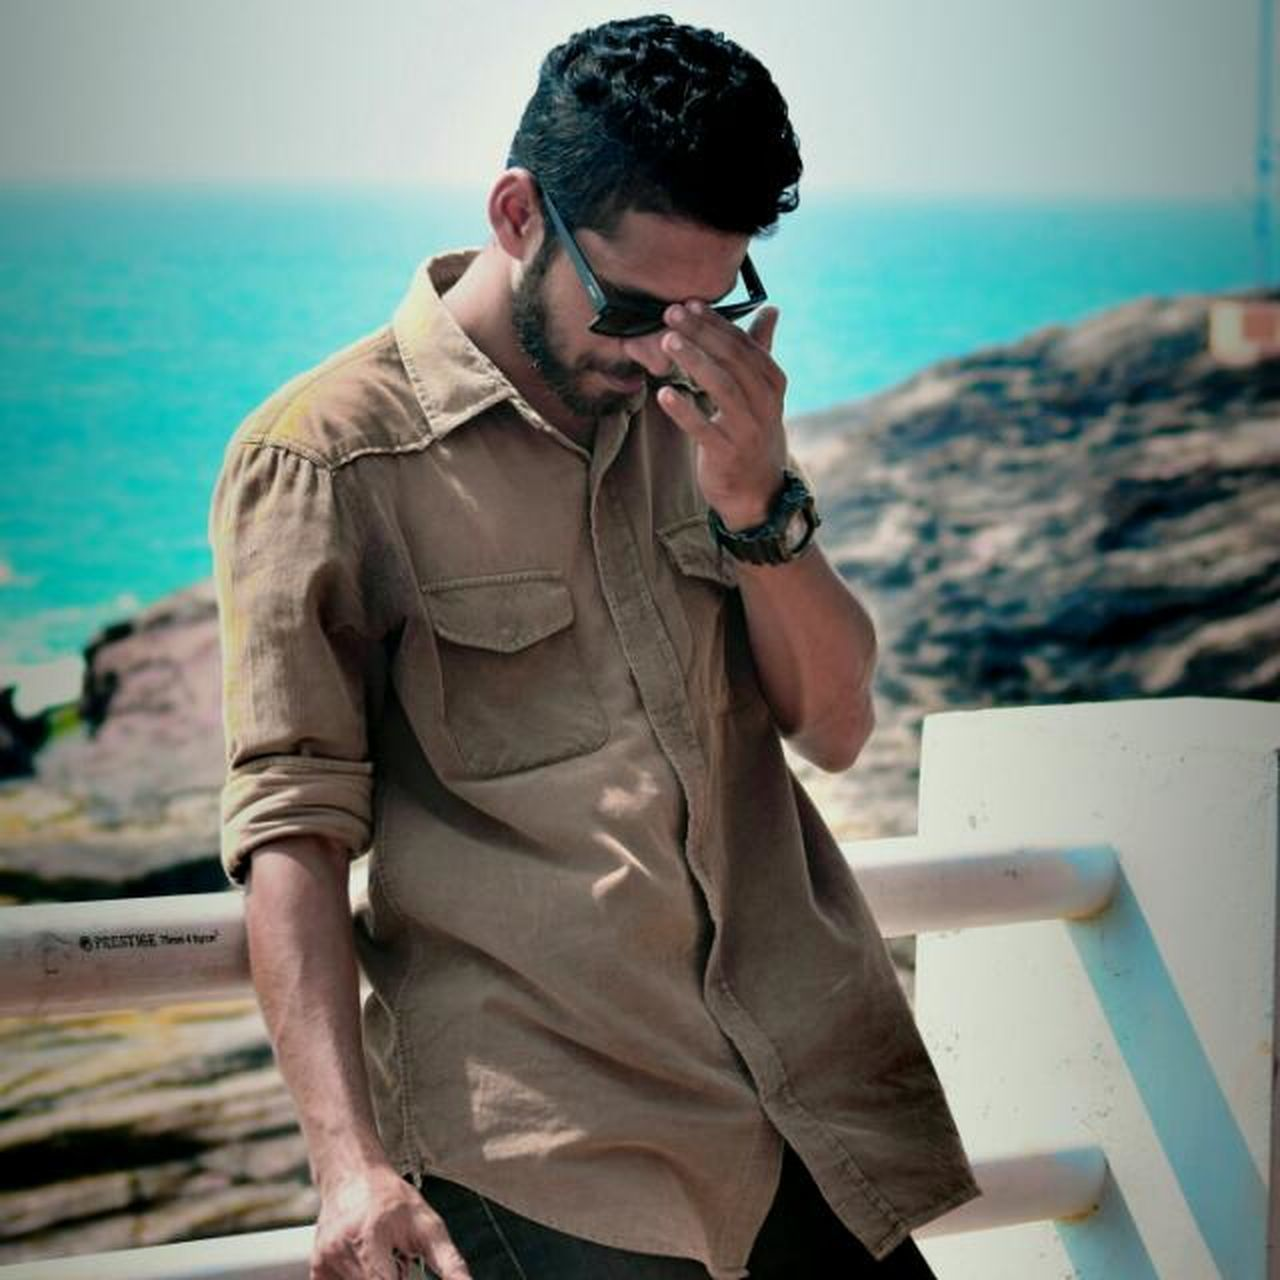 When My friend posed... Only Men One Man Only Sea Casual Clothing Lifestyles Beach Men Water Outdoors Day Calmness Ray Of Sun Kerala The Gods Own Country ;) Friendship Beard One Mature Man Only Sunglases 😎 Shades Of Light Model Mode Model Photography